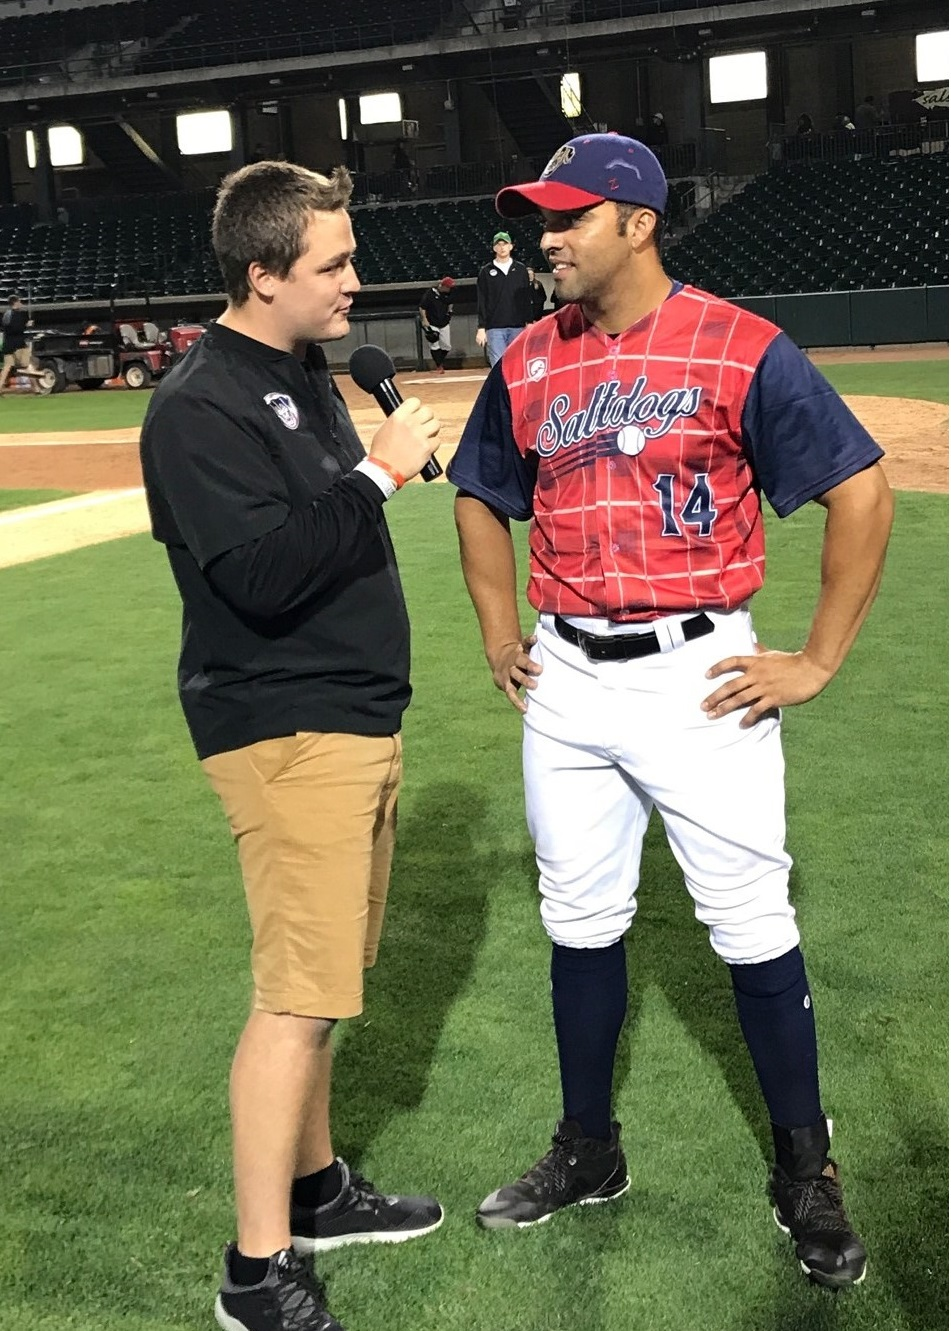 Ryan Schreurs (left) interviews Randolph Oduber, a Salt Dogs baseball player, during Schreurs' internship in summer 2018.